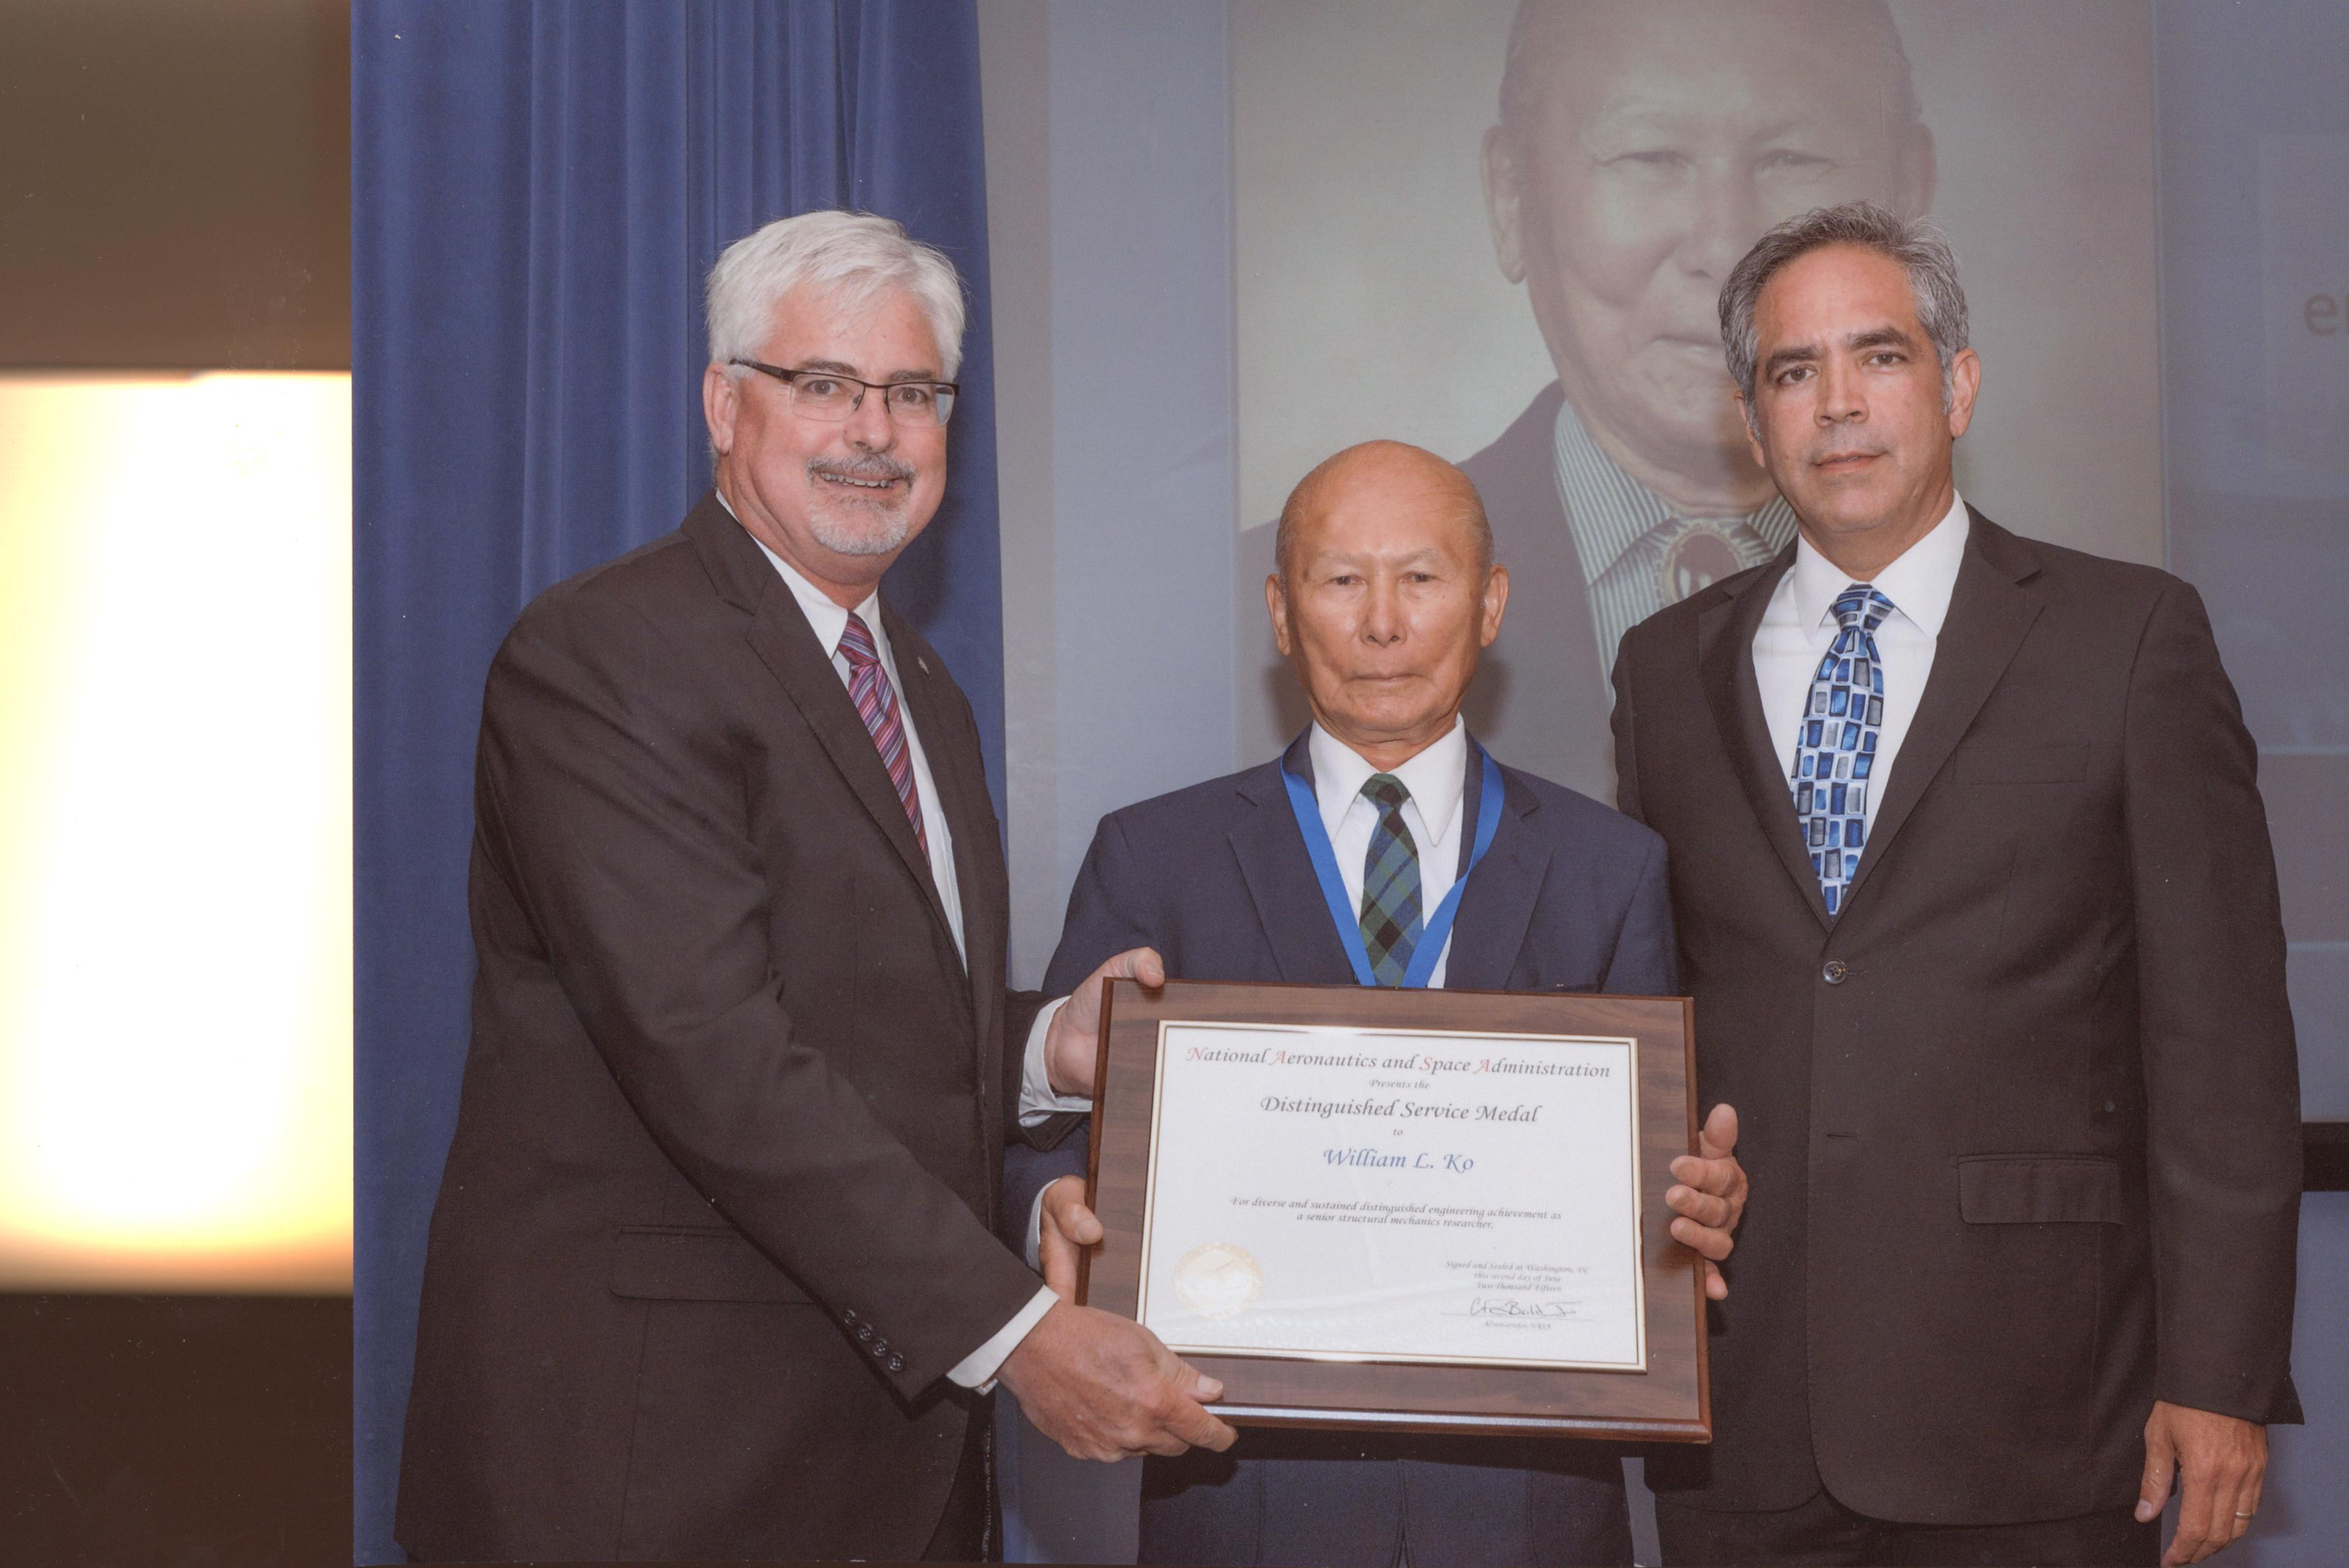 16. NASA Distinguished Service Medal, NASA's Highest Honor Dr. William Ko 2015 - 0003